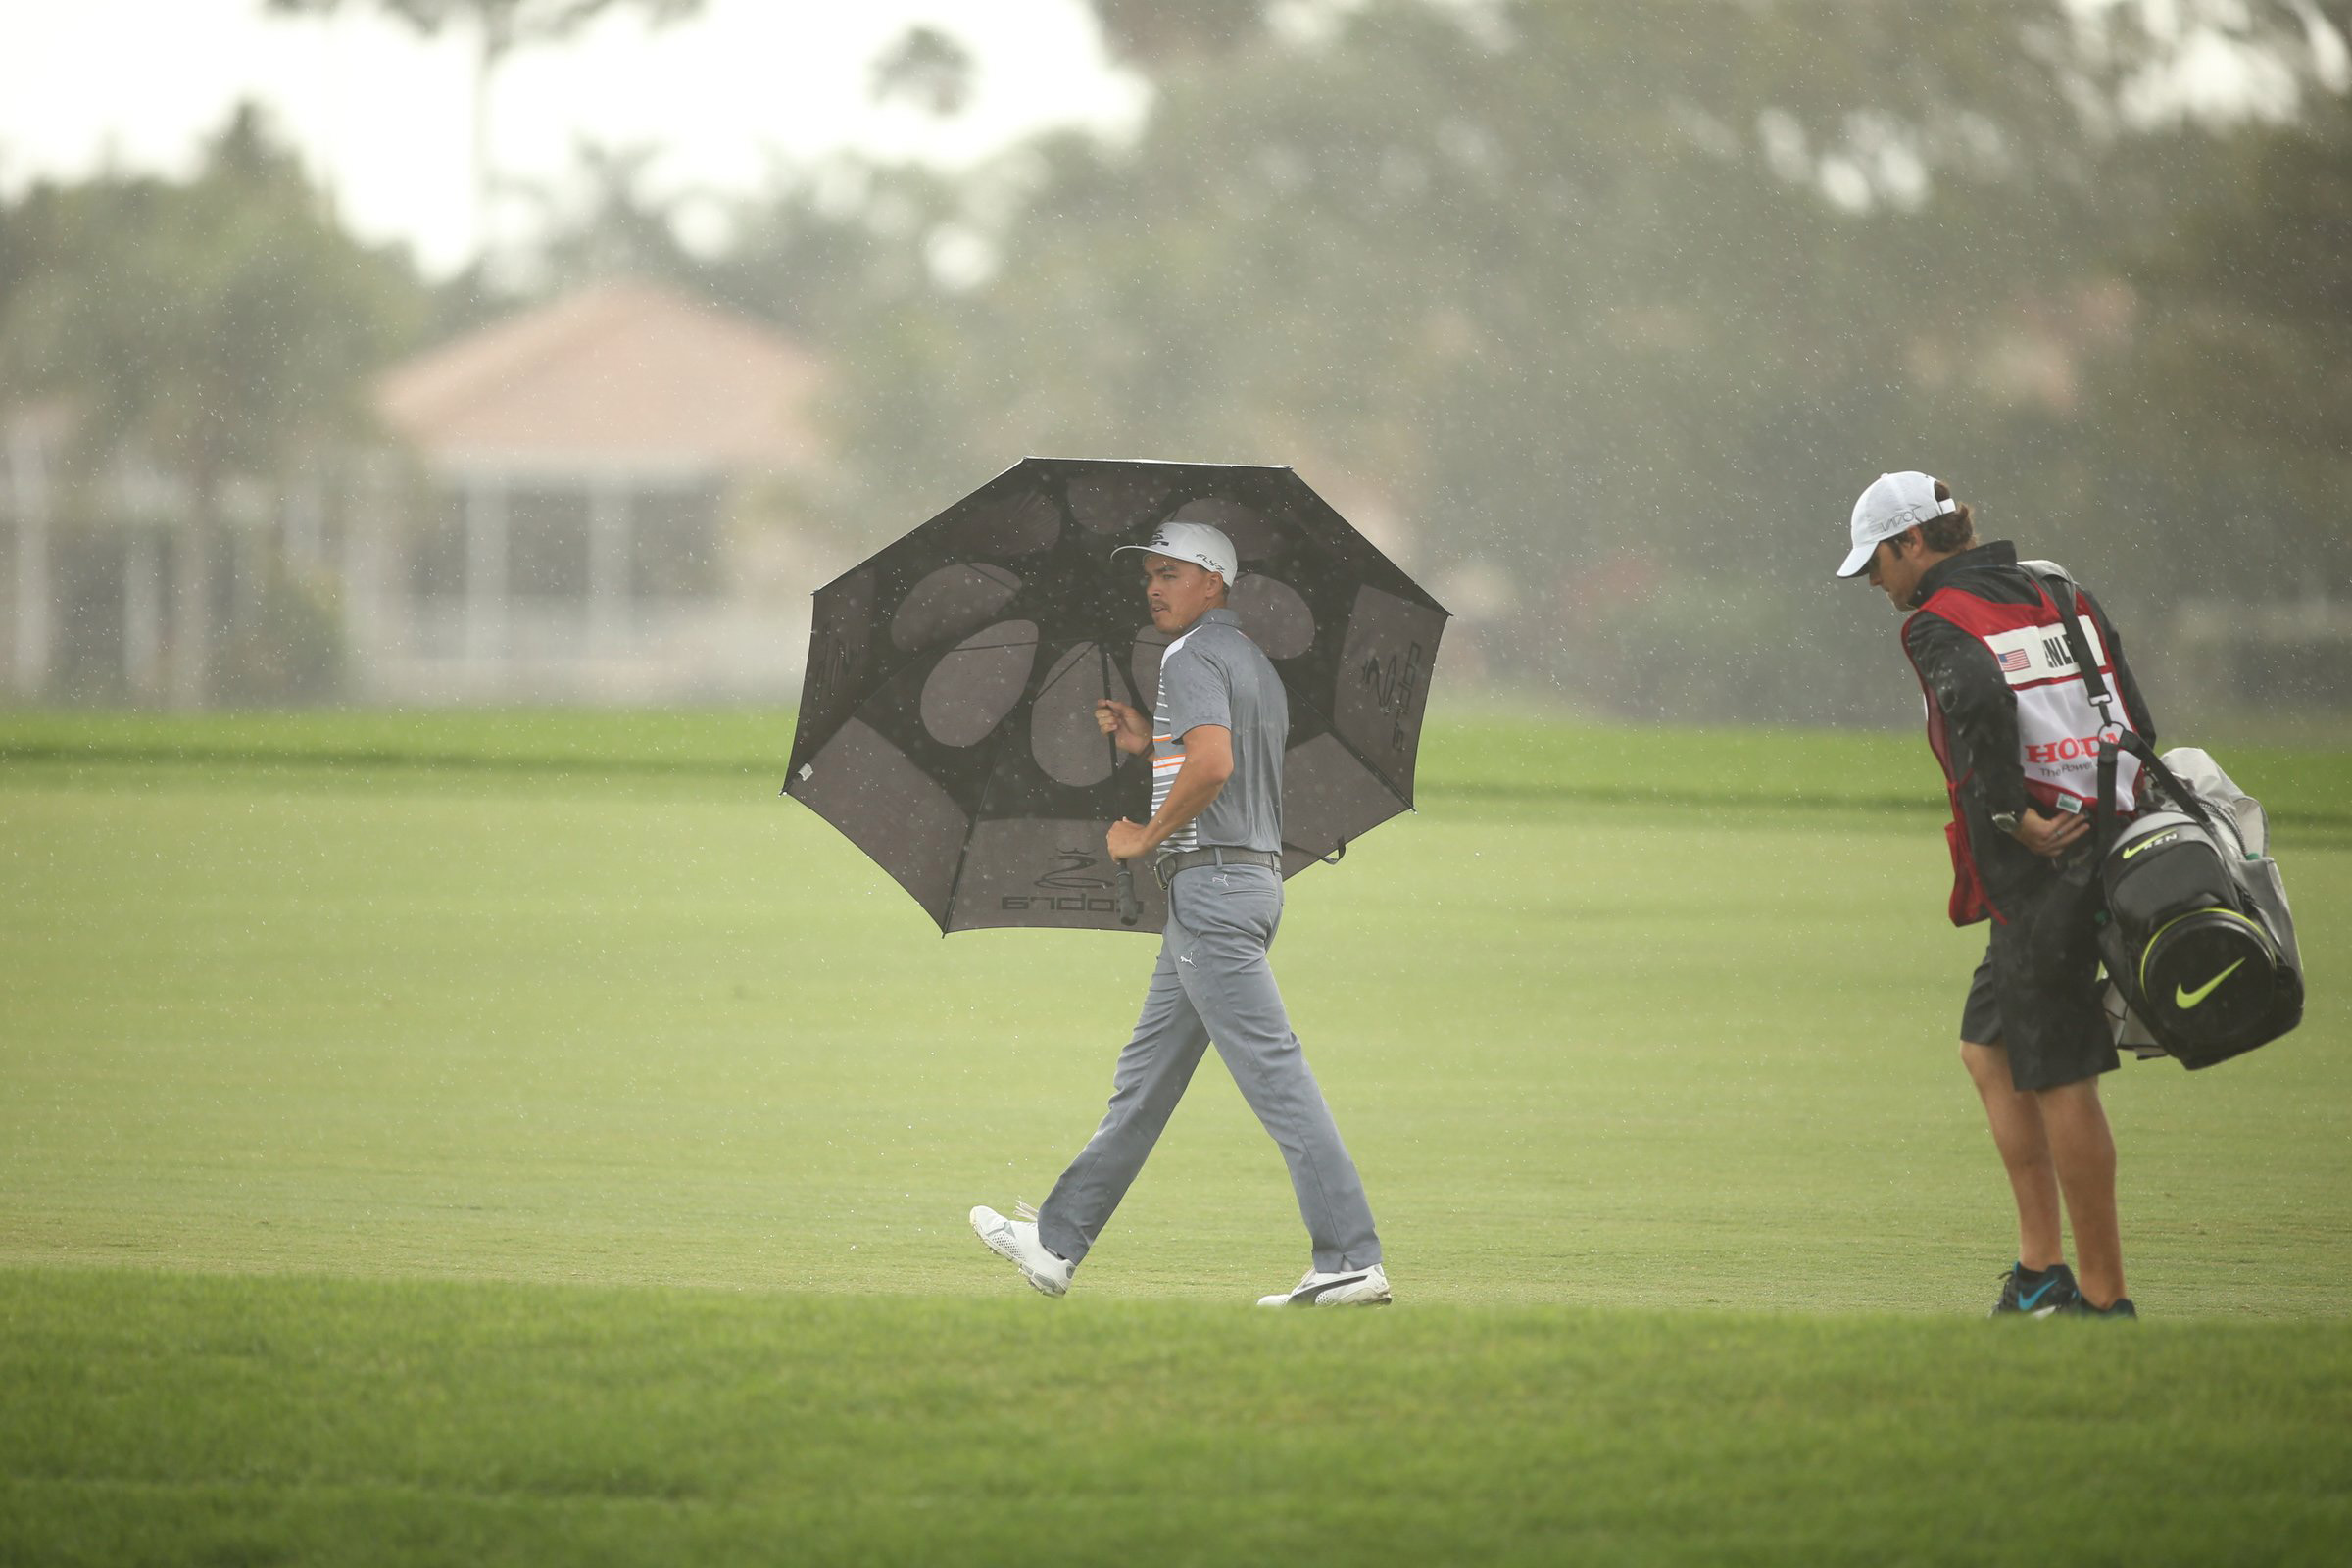 Rickie Fowler tries to stay dry during Saturday's rain-shortened third round of the Honda Classic in Palm Beach Gardens, Fla.